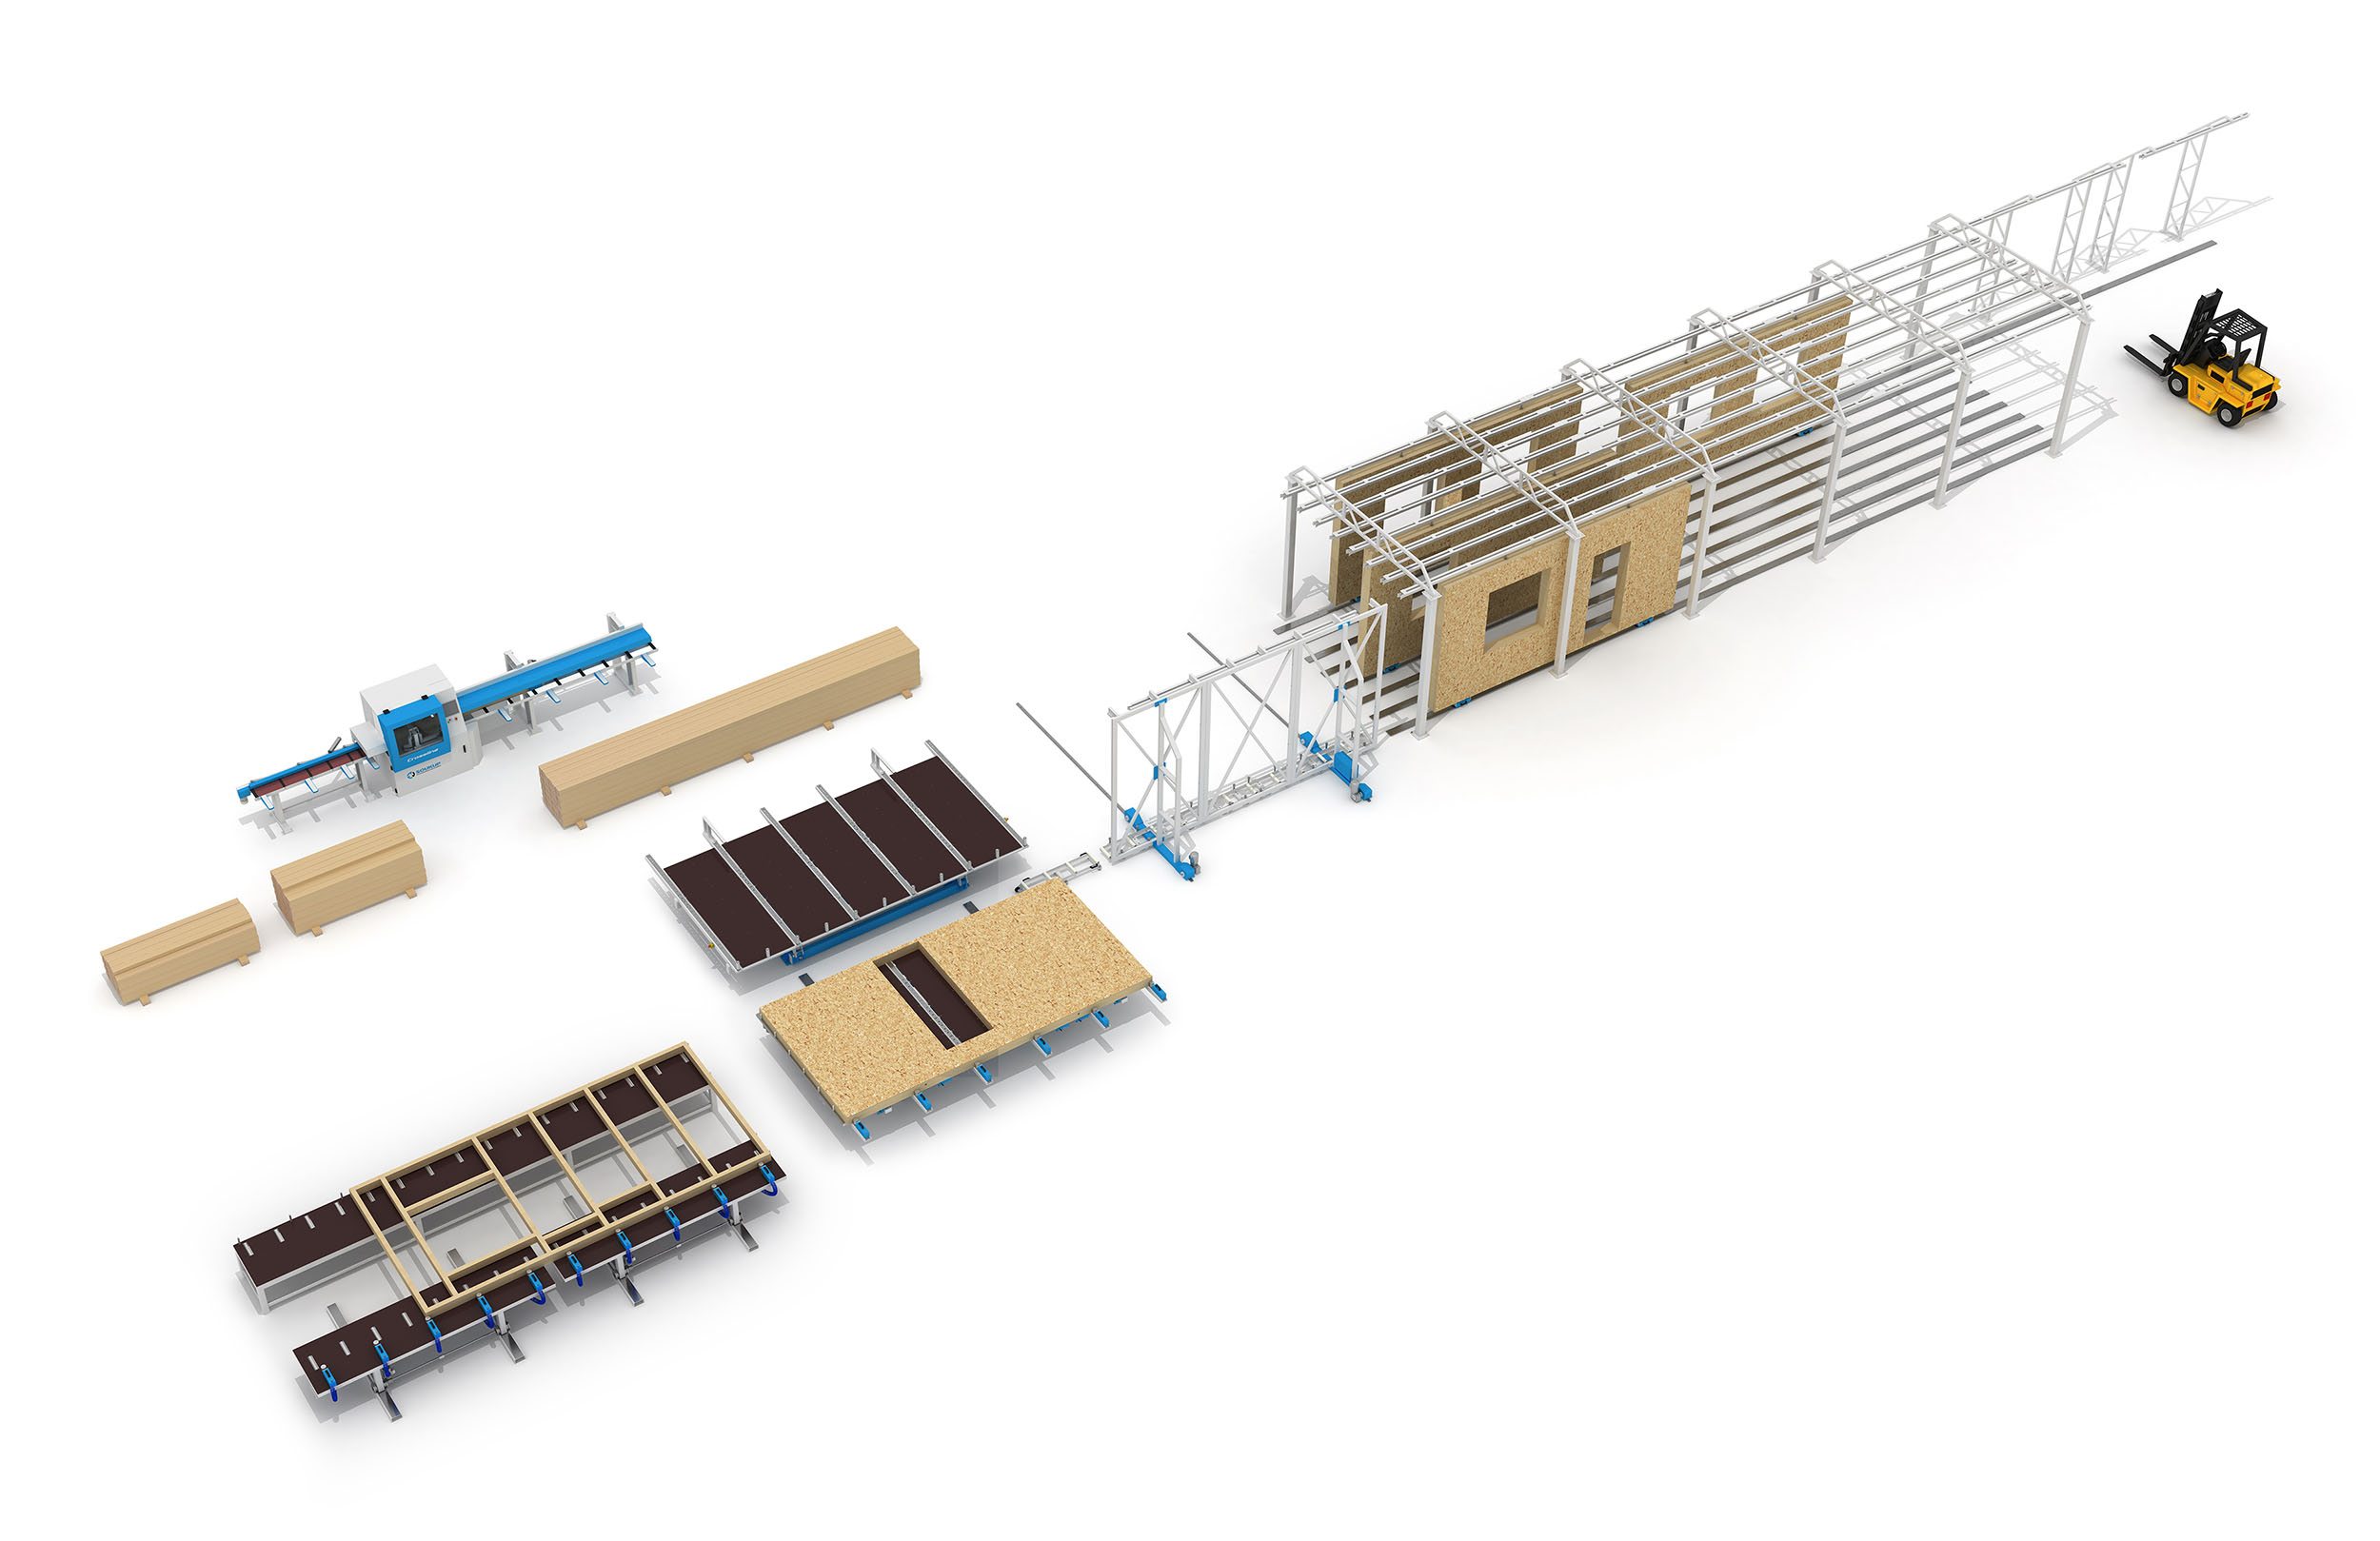 Complete Off Site Construction Building Production Line by Soukup America